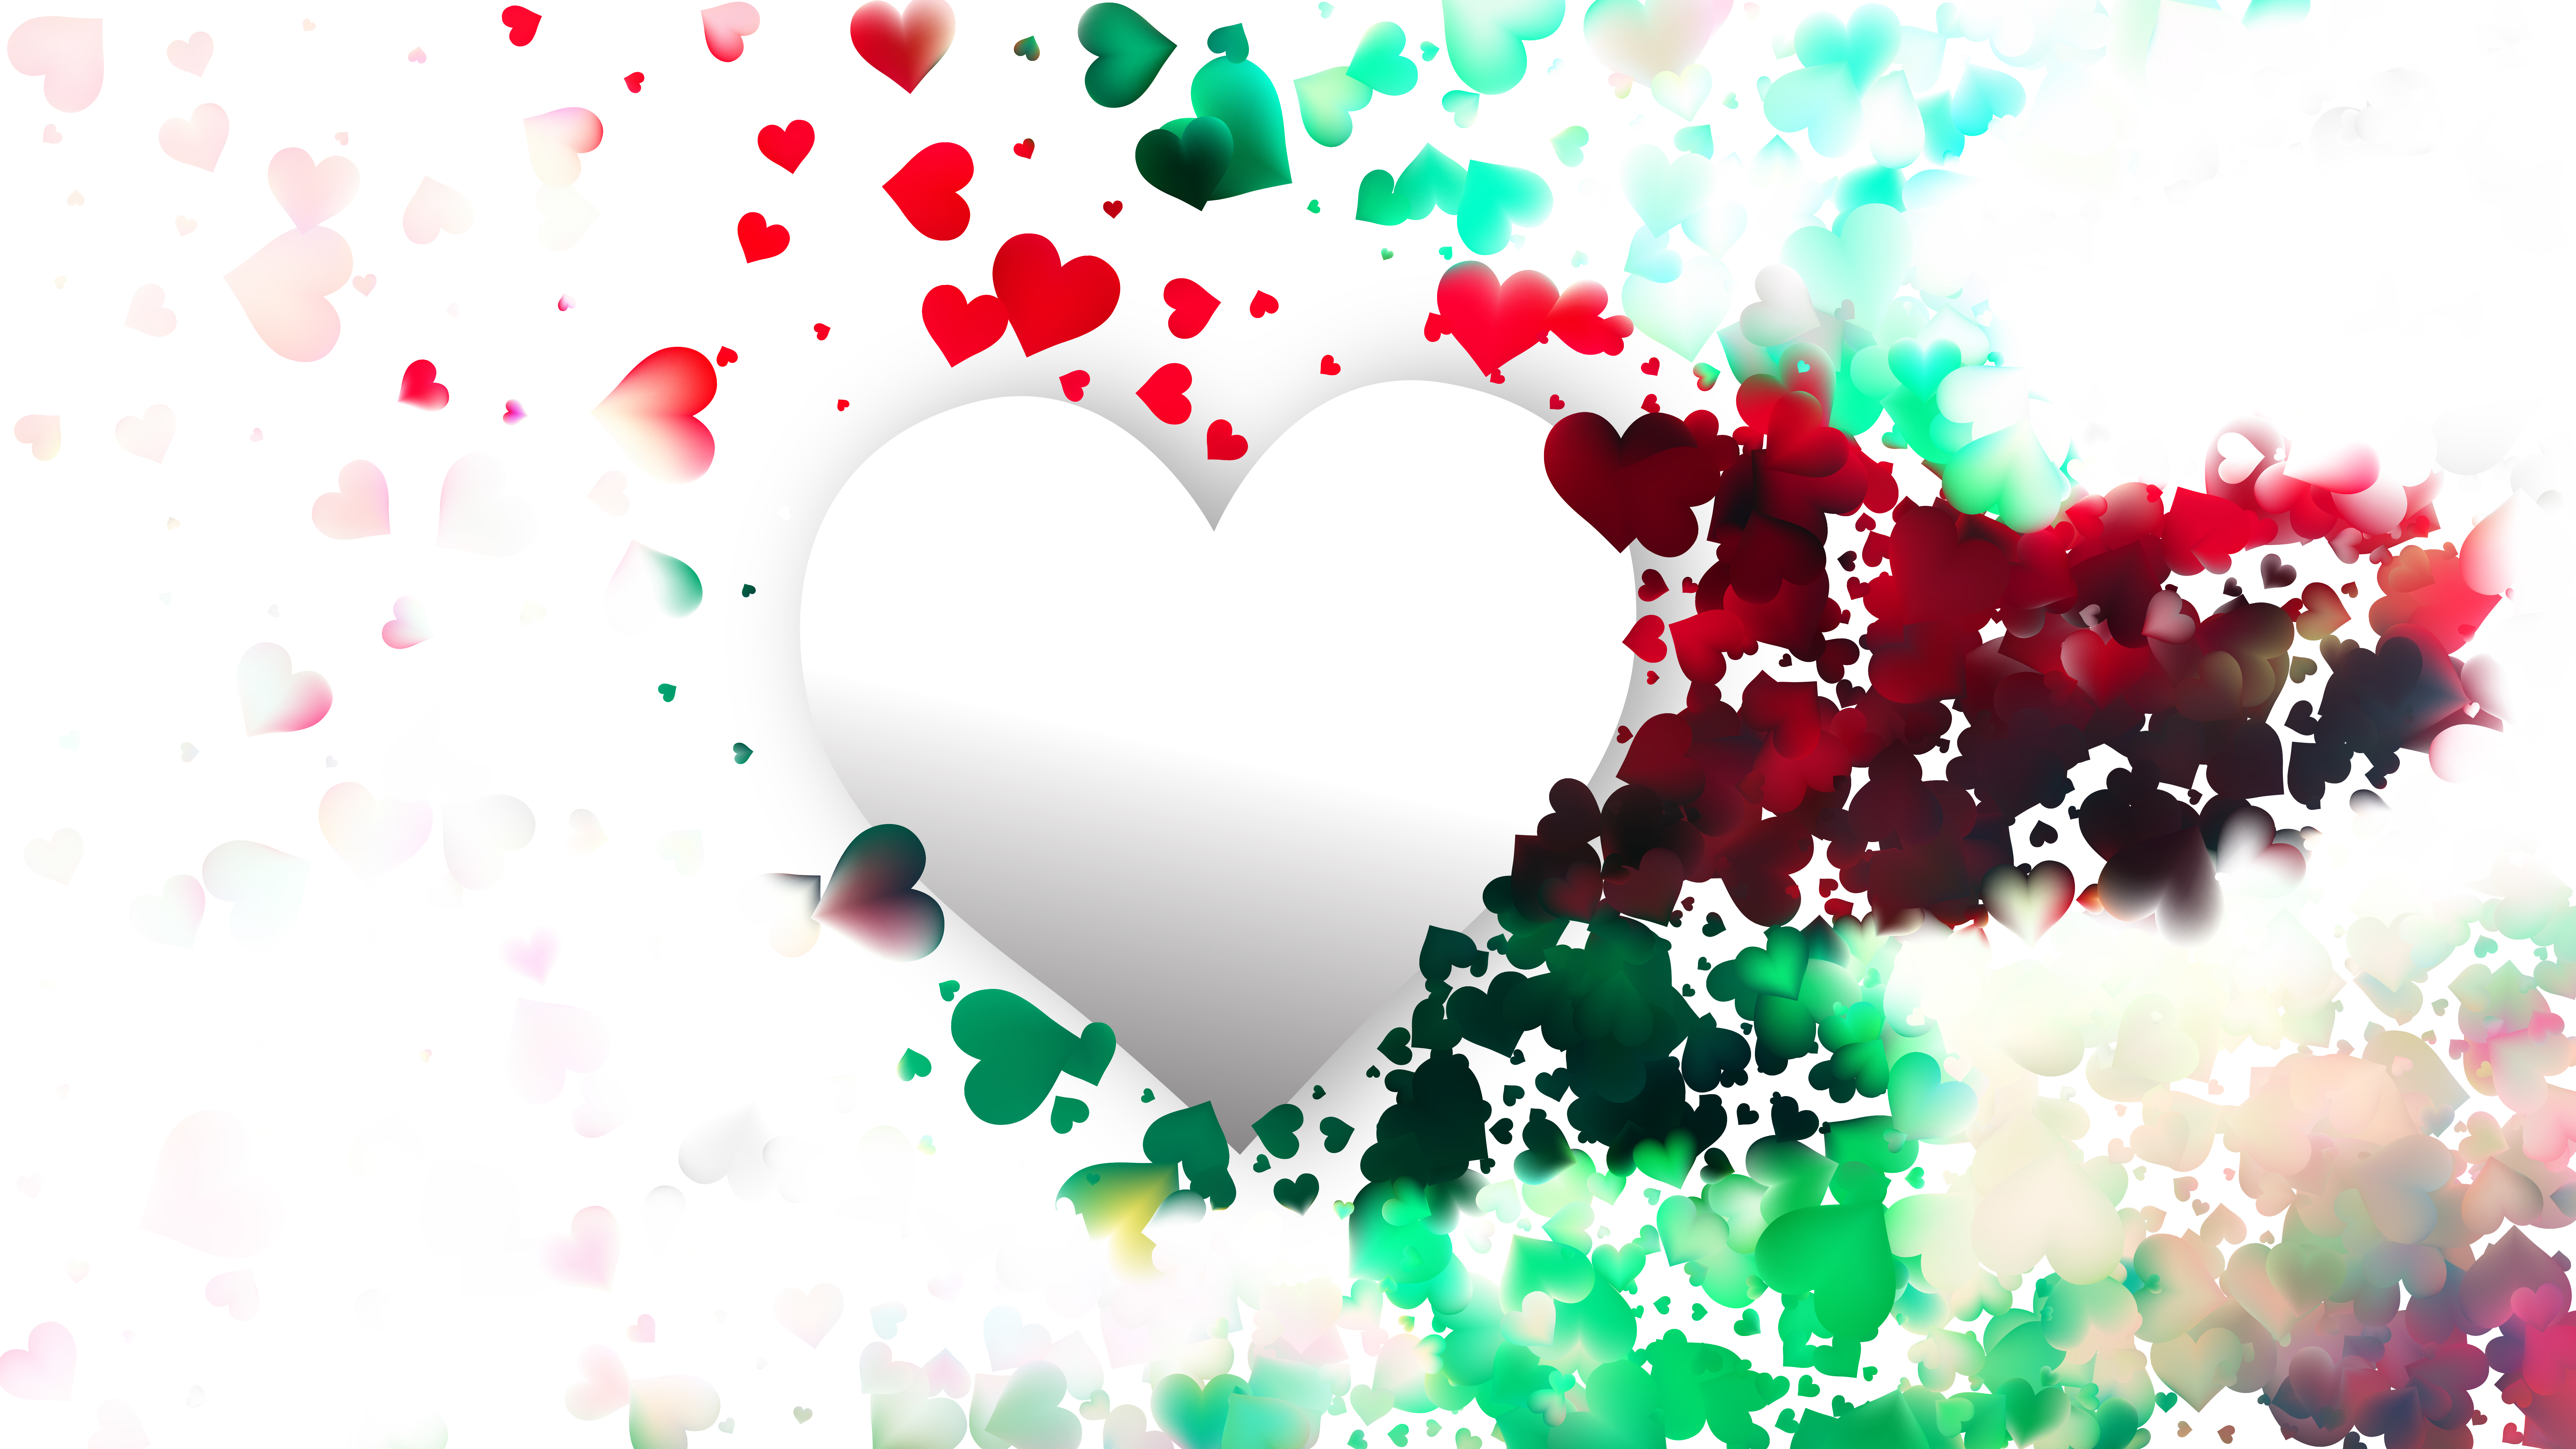 Colorful Heart Wallpaper Background Black Love Pic Background 8000x4500 Wallpaper Teahub Io